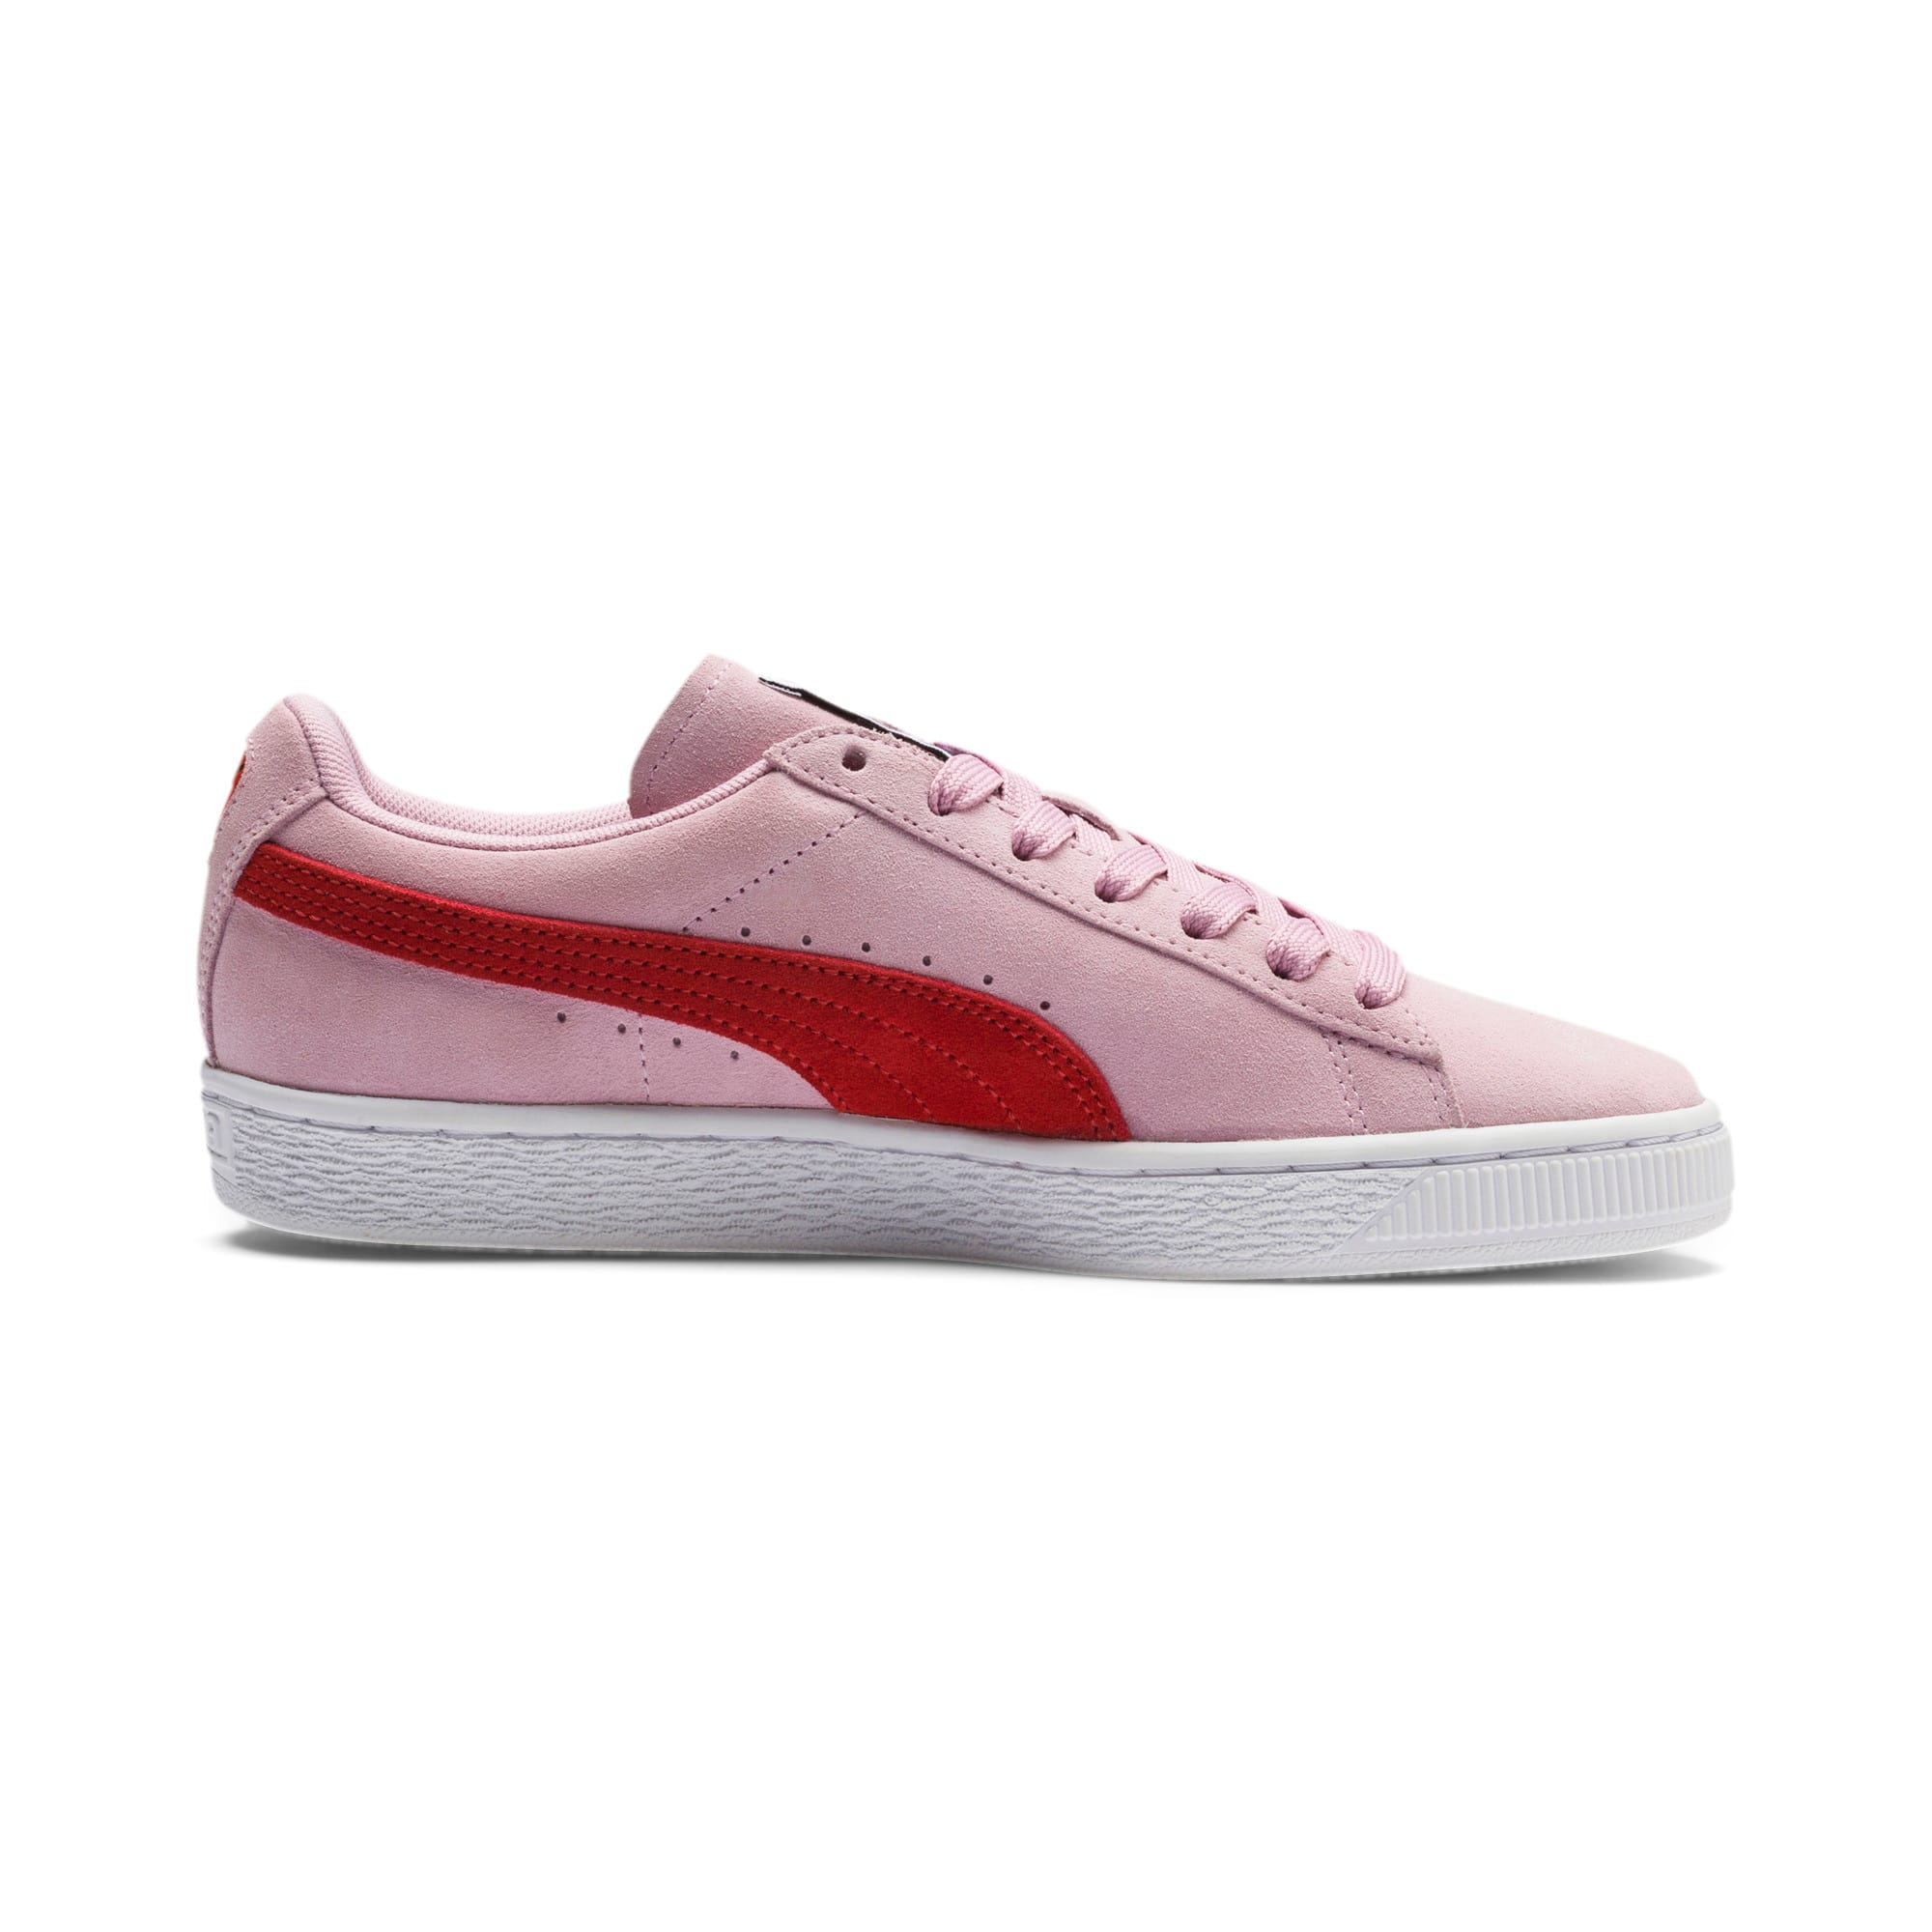 Thumbnail 5 of Suede Classic Women's Sneakers, Pale Pink-Hibiscus, medium